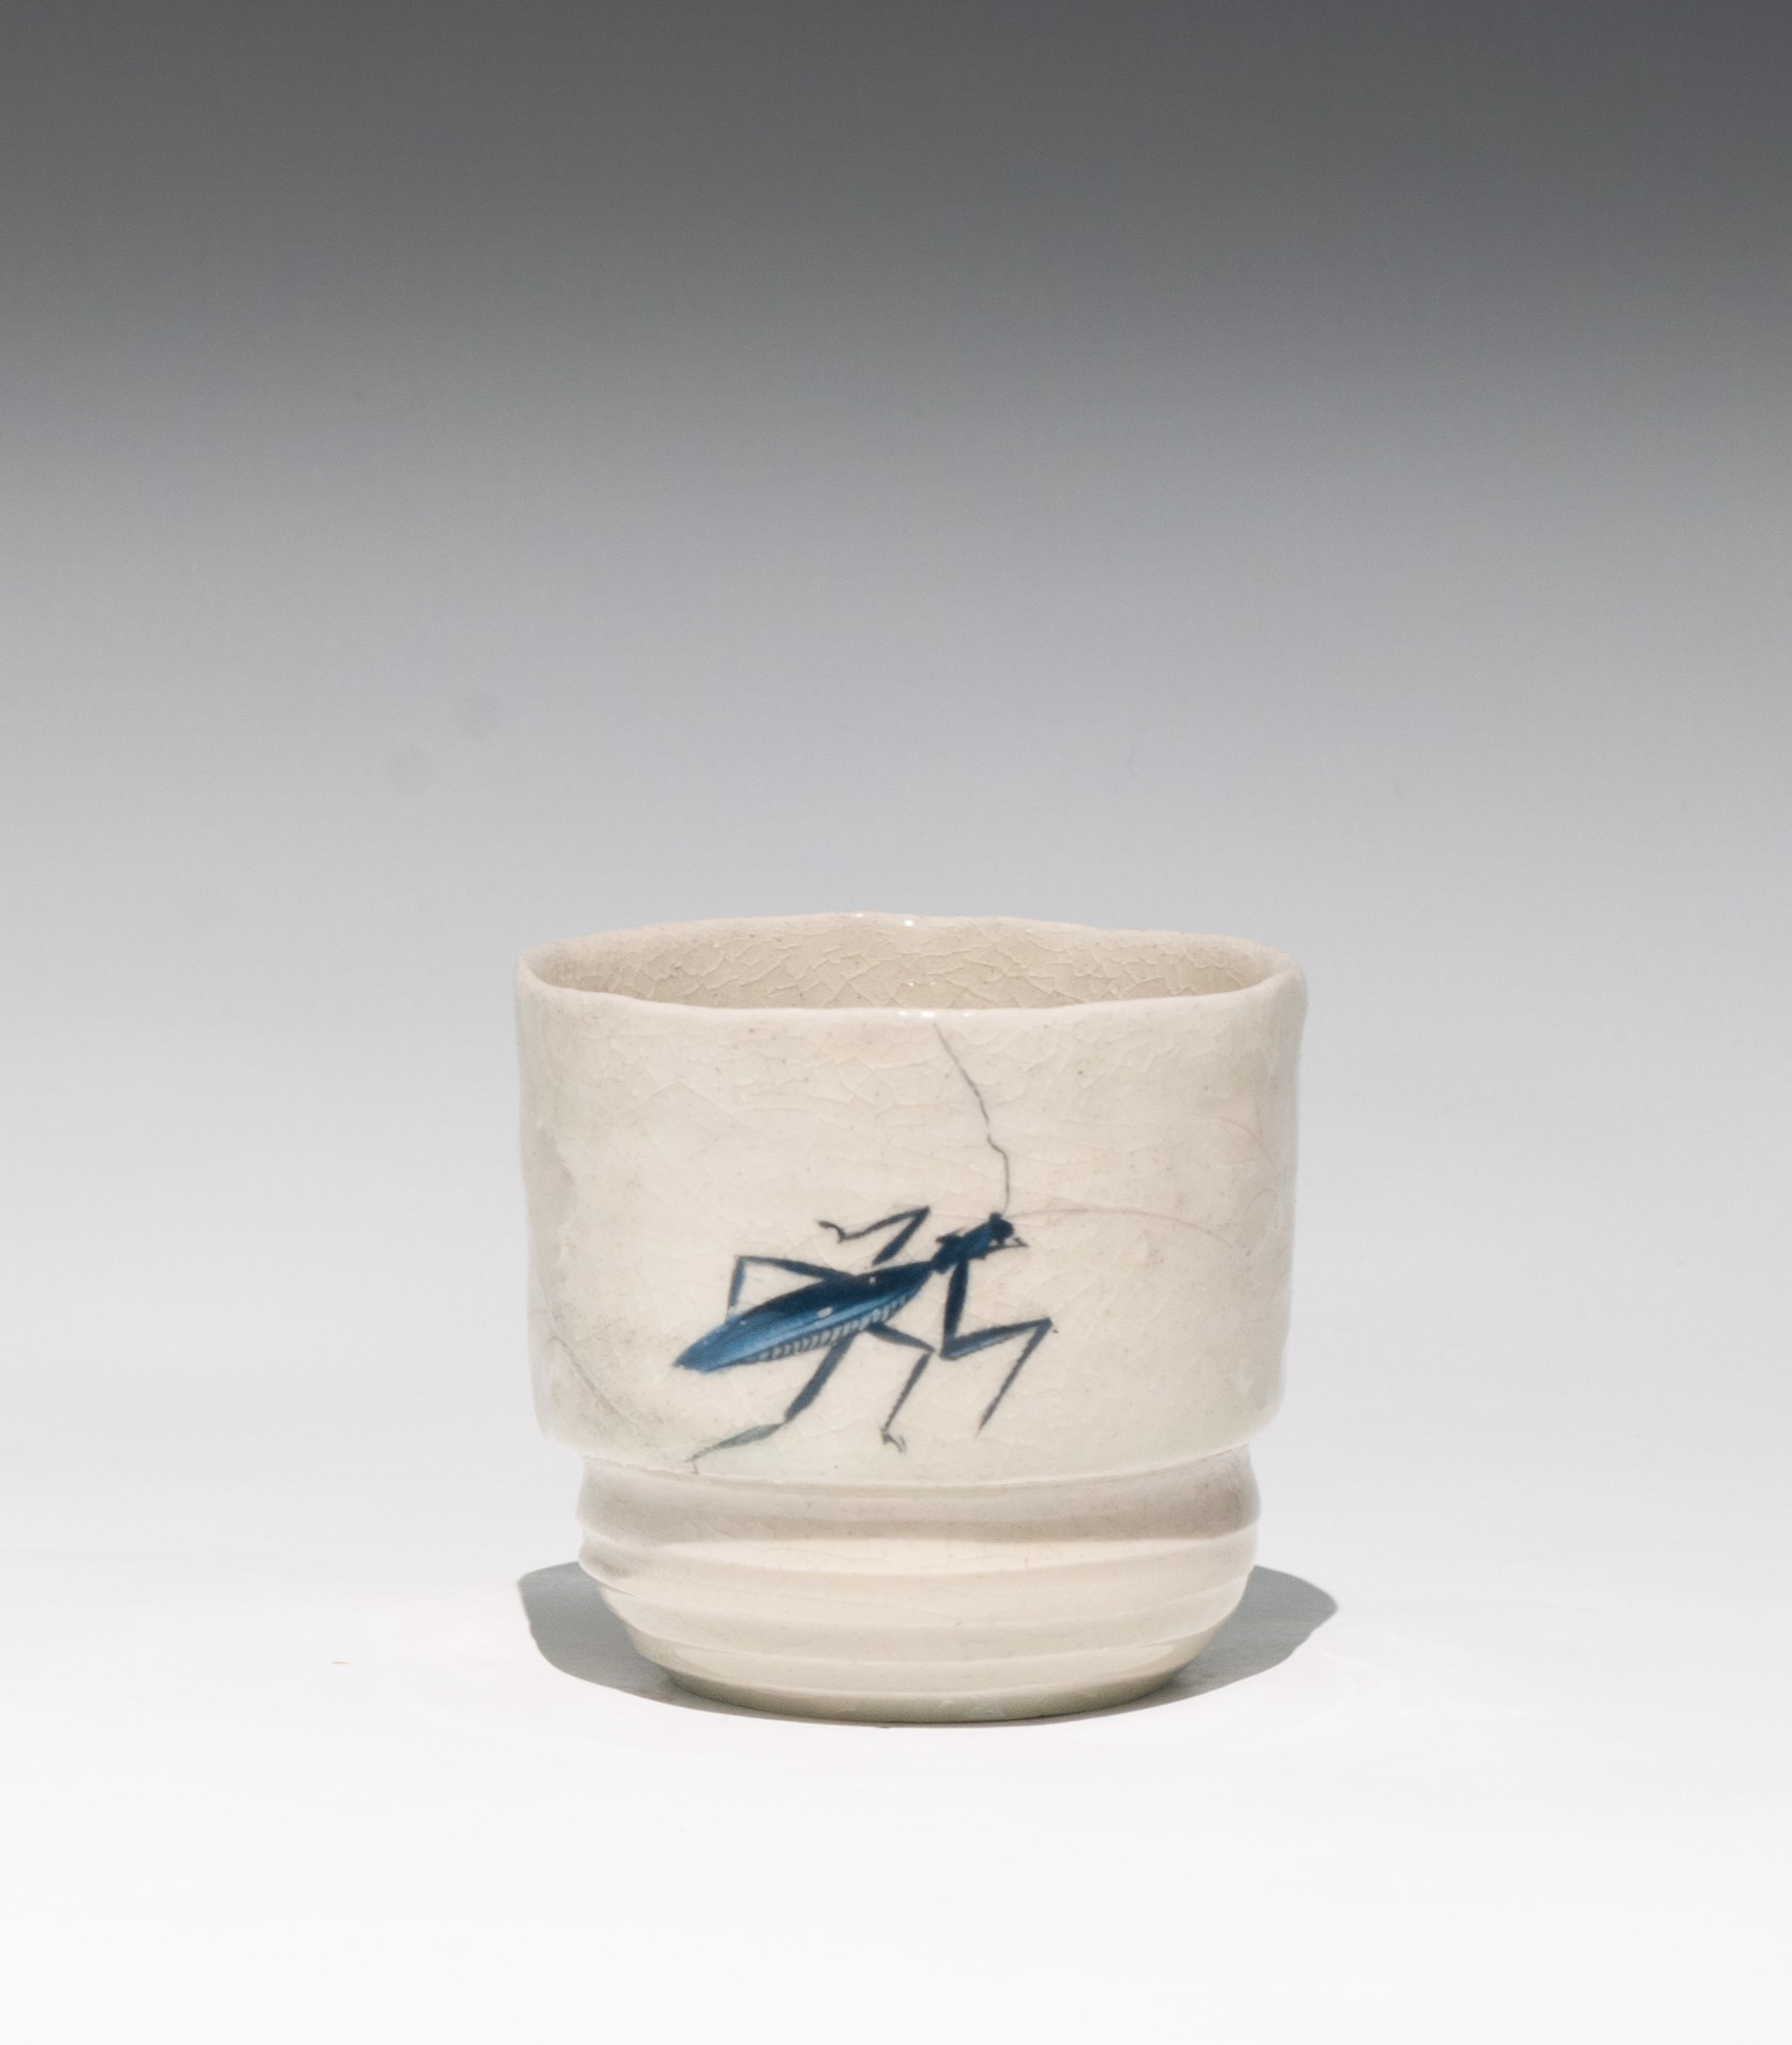 Insect Tea Bowl 16 by Caroline Bottom Anderson